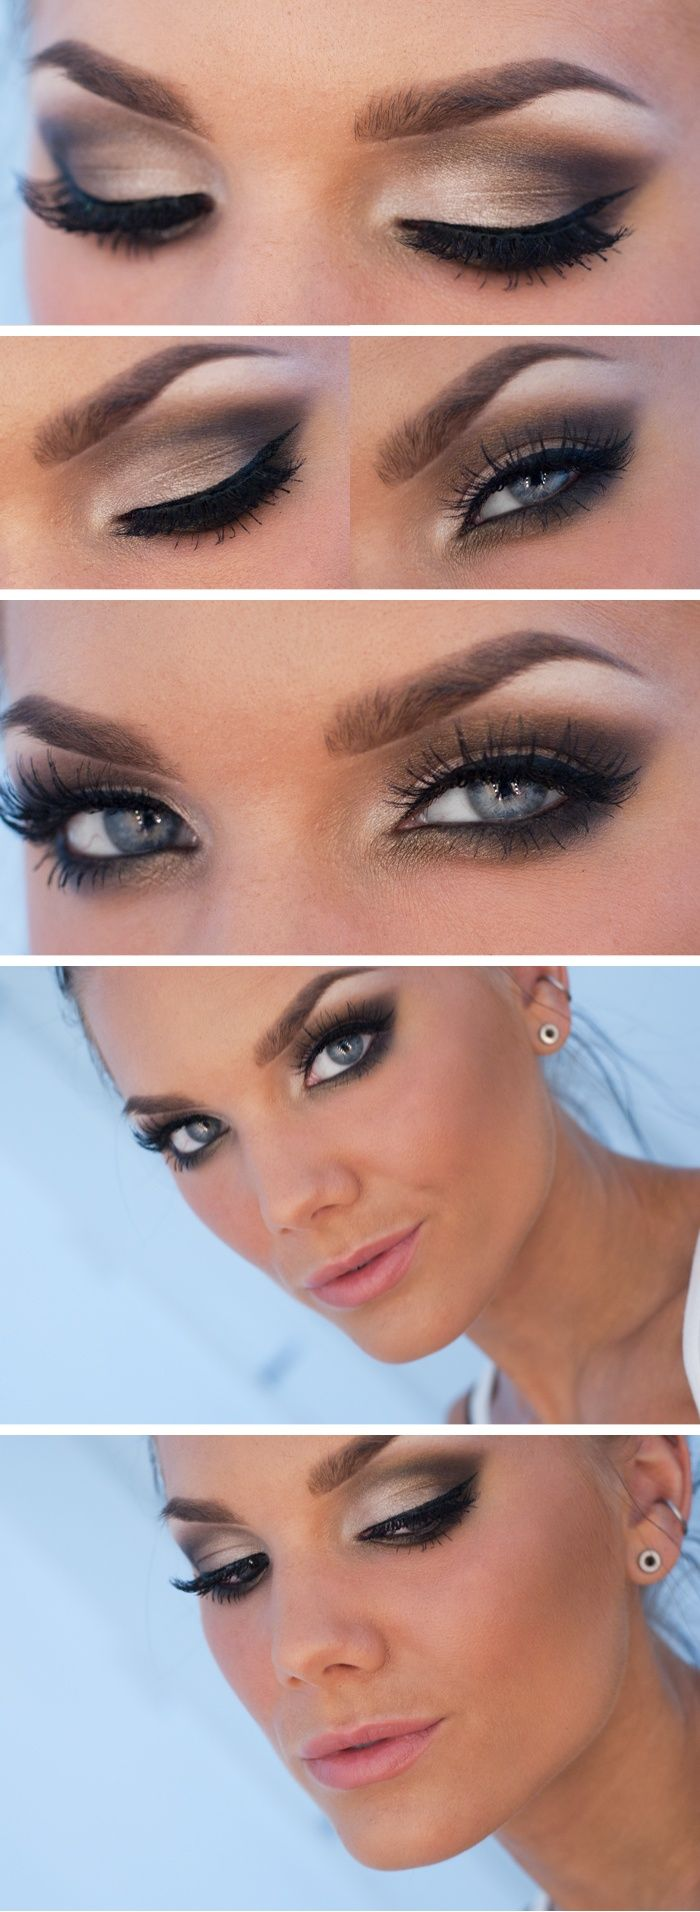 Maquillage #mariage